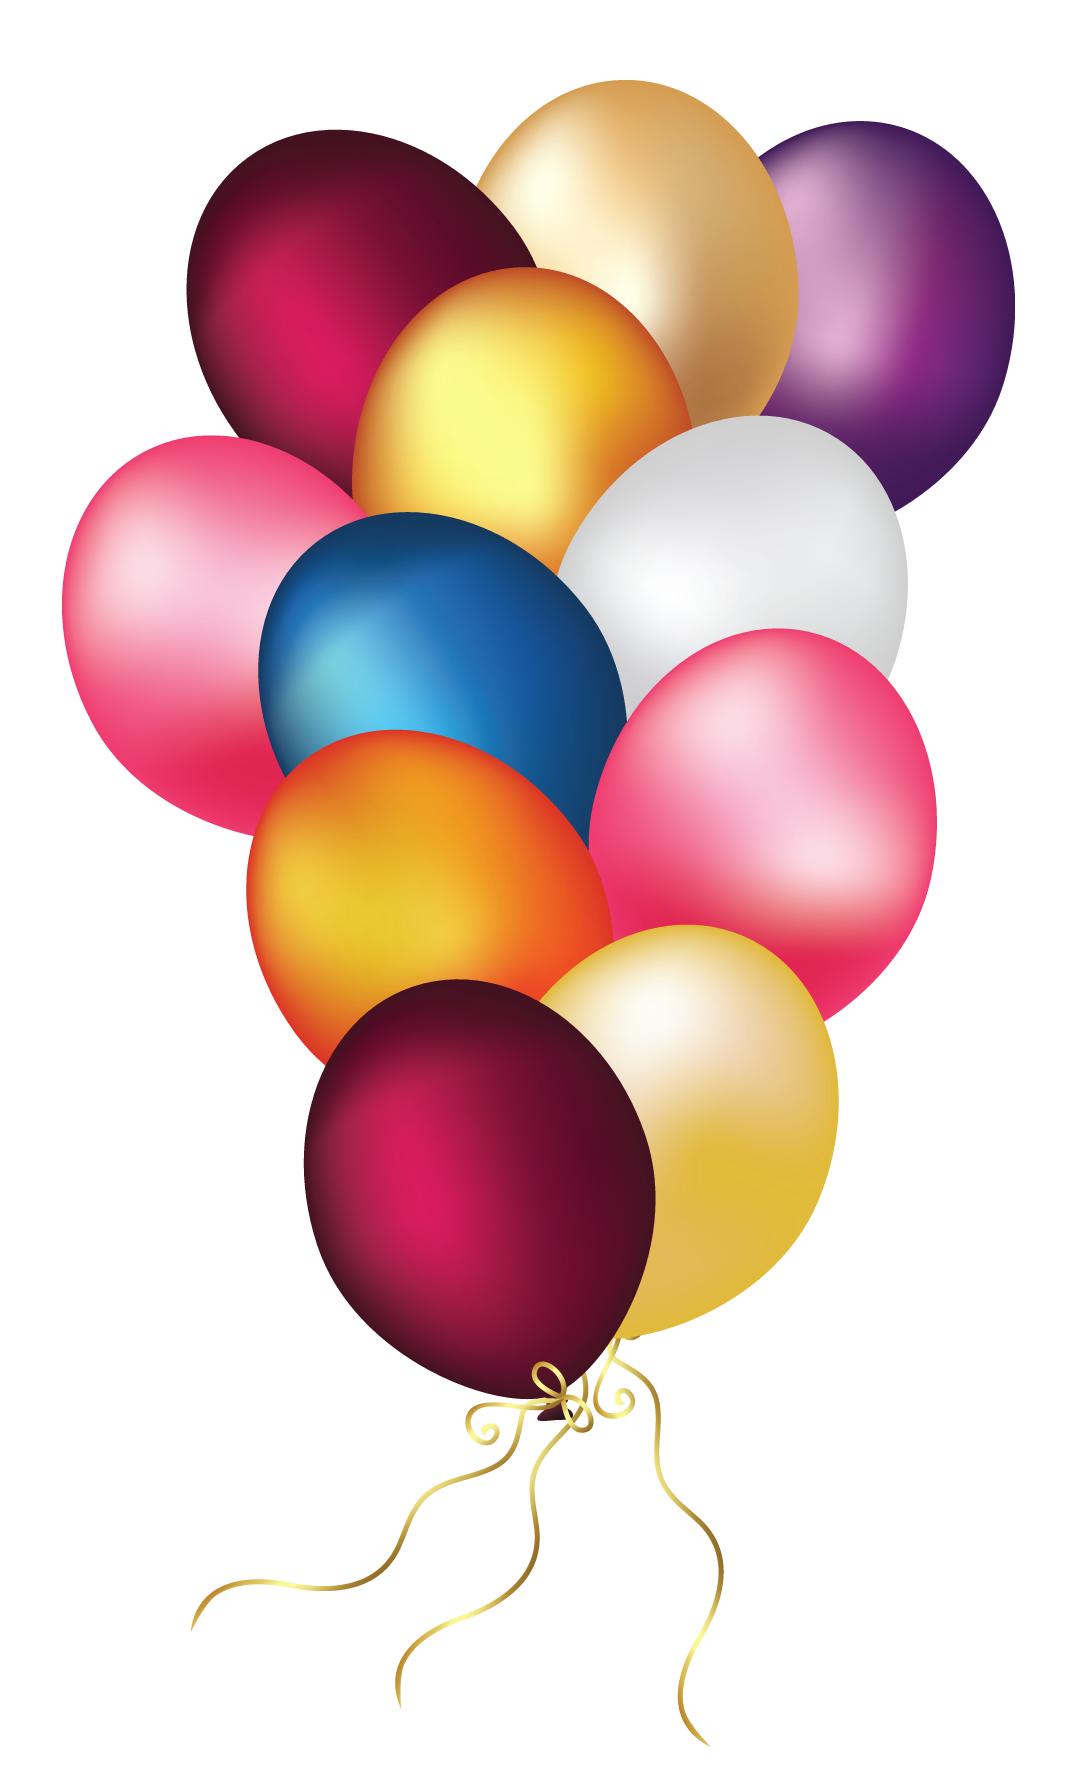 Surprise clipart birthday ballon. Colorful balloons transparent png